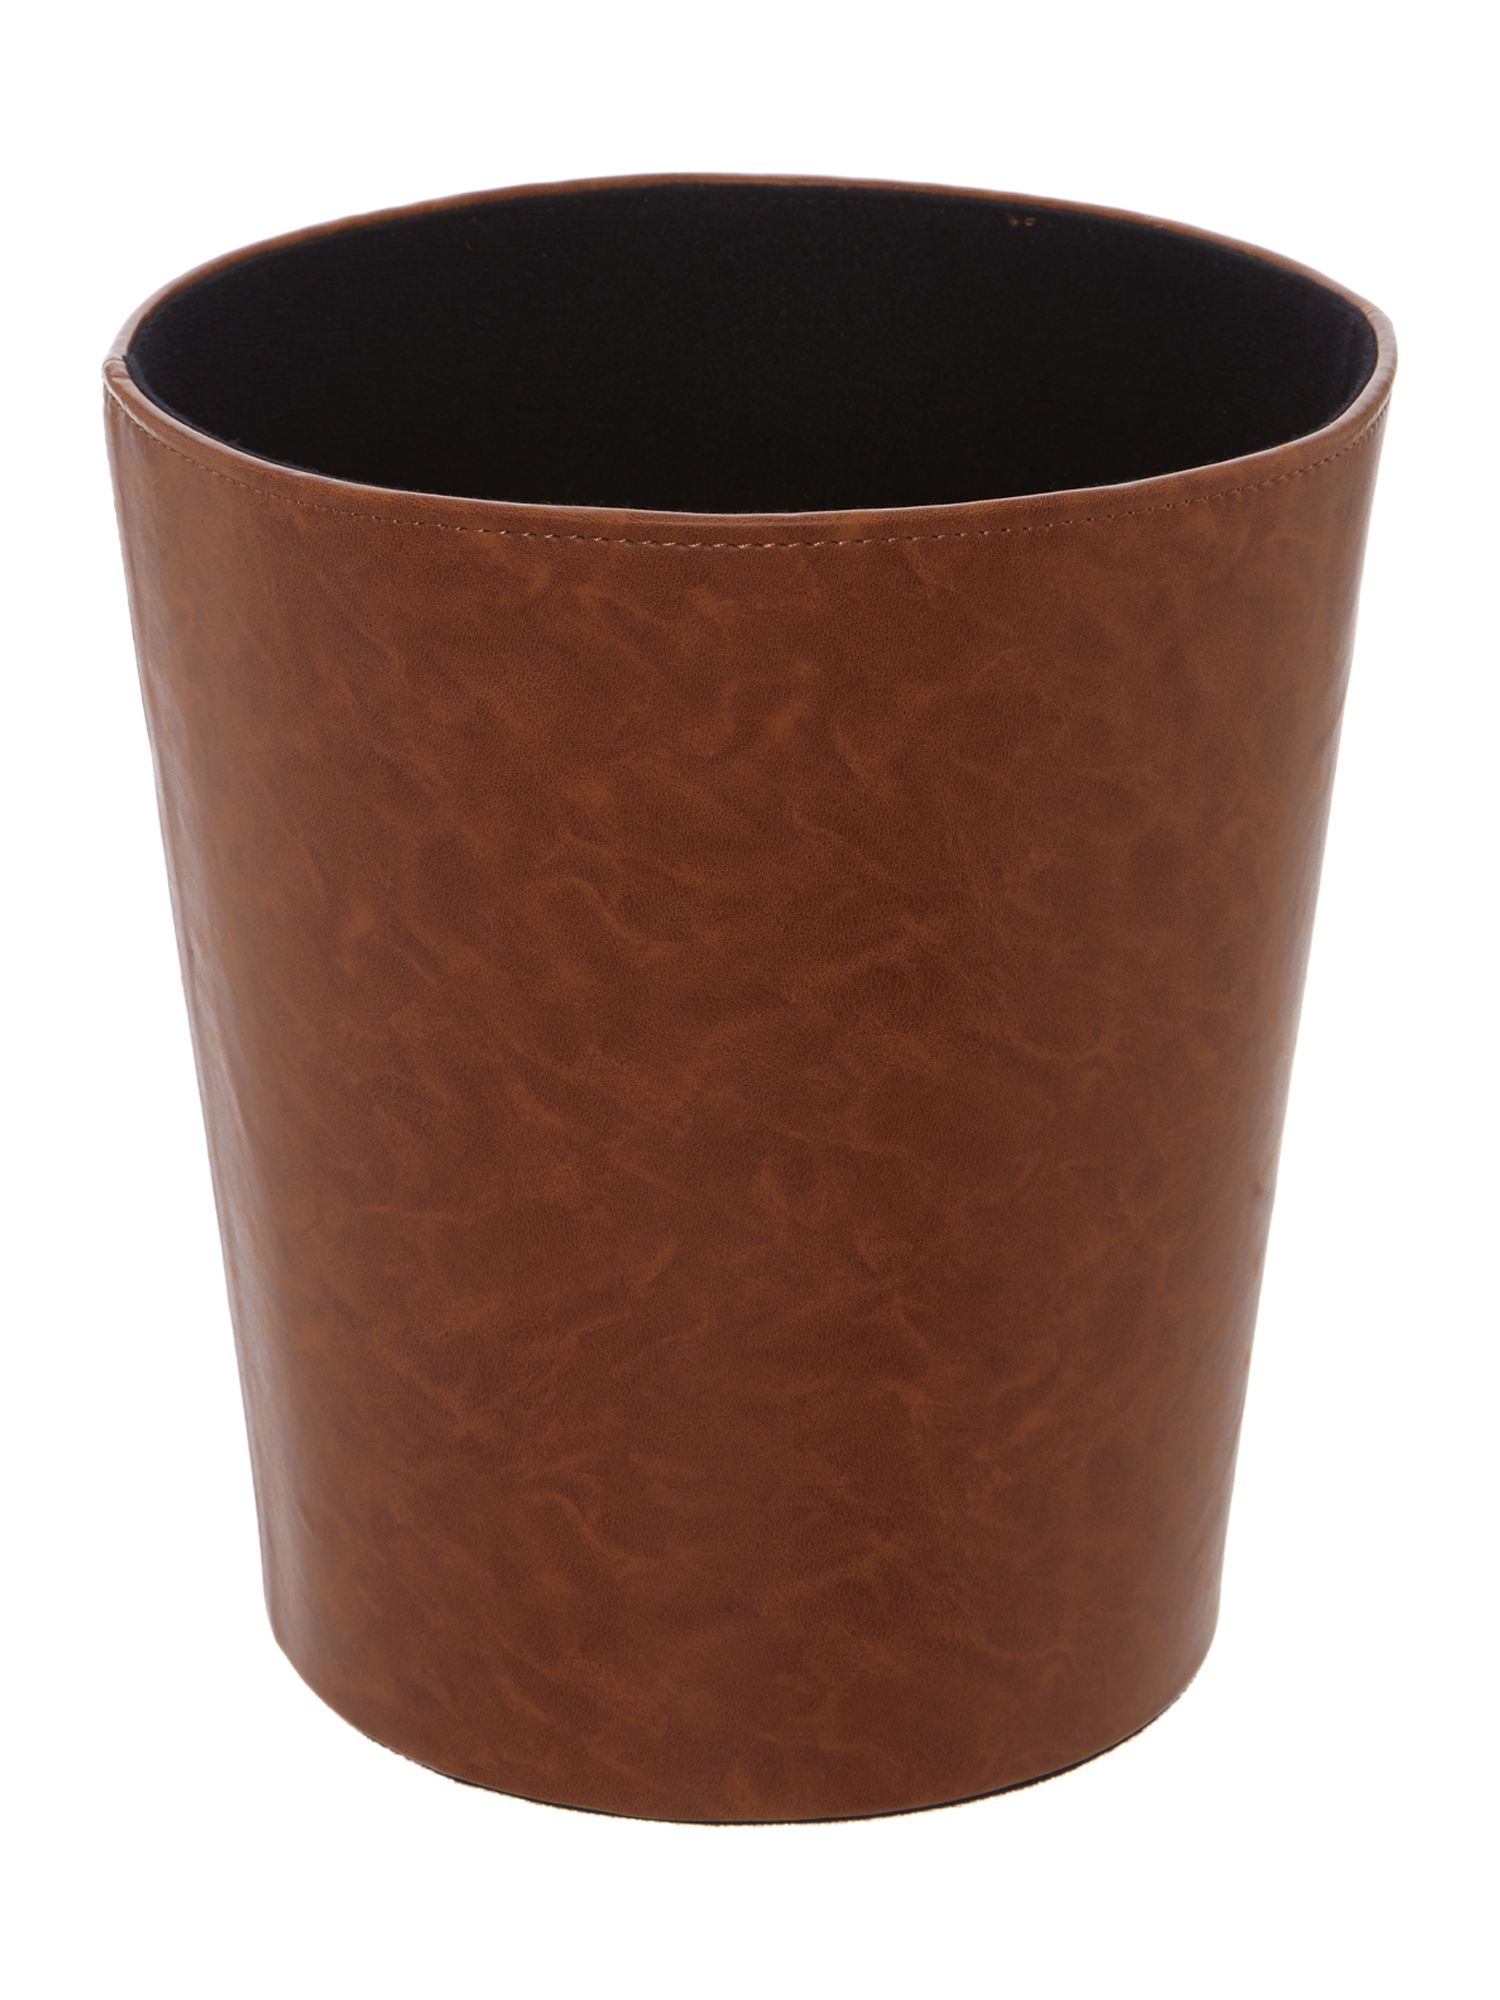 Tan faux leather waste bin